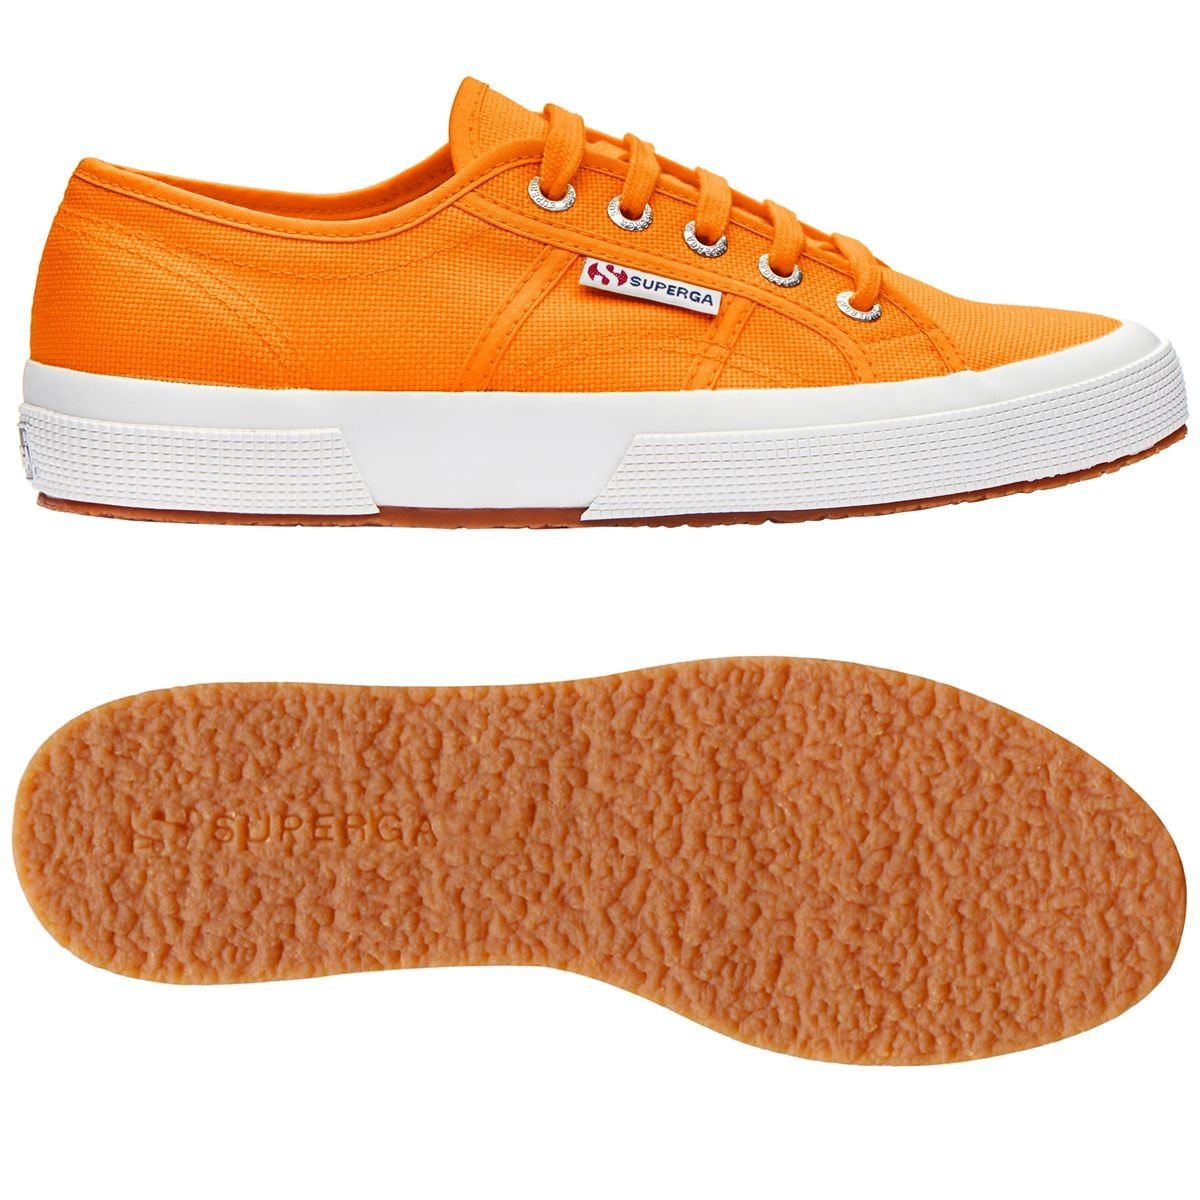 Superga Unisex-Erwachsene 2750 Navy Classic Sneaker, Navy 2750 Bright Orange 5cf335